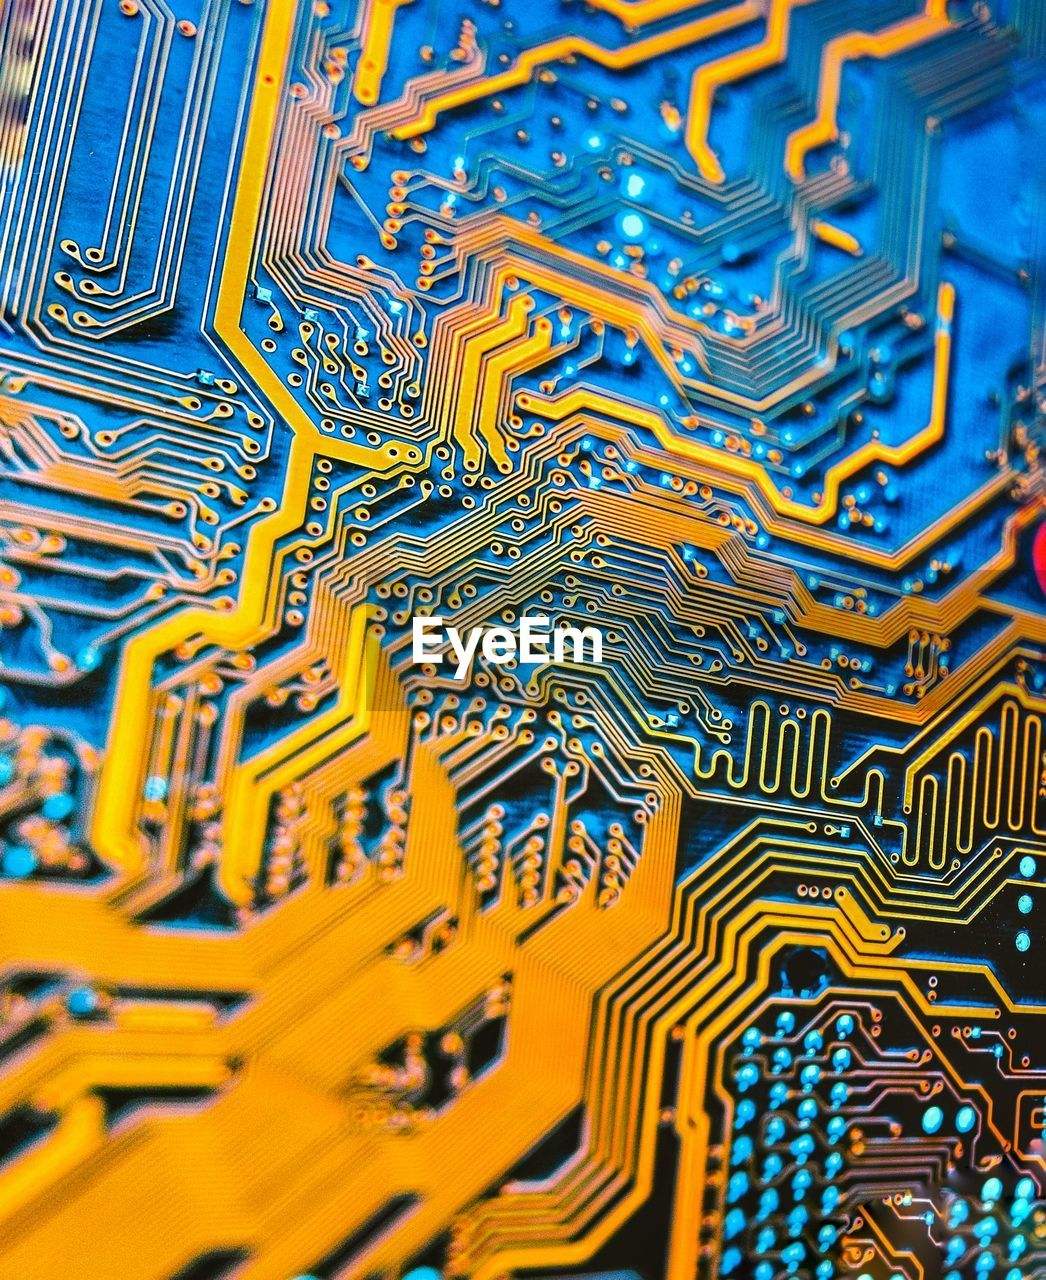 full frame, circuit board, backgrounds, pattern, computer chip, electronics industry, no people, close-up, indoors, industry, blue, complexity, abstract, technology, selective focus, mother board, textured, multi colored, intricacy, creativity